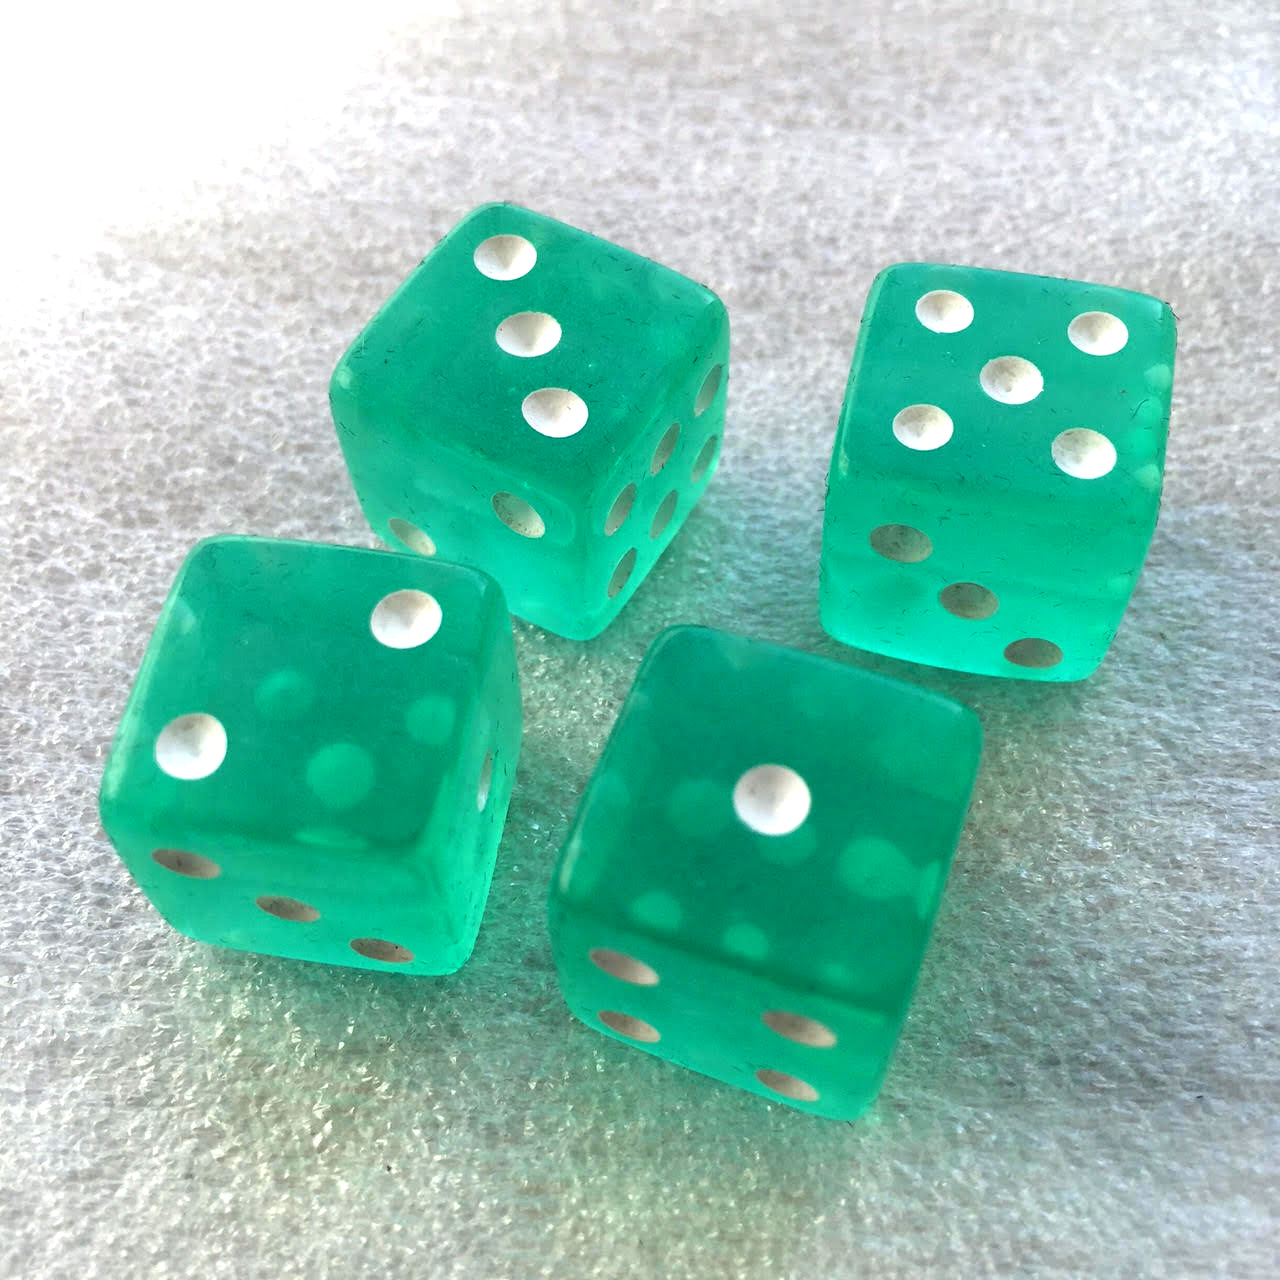 Green dice (x4 in the basic bag).